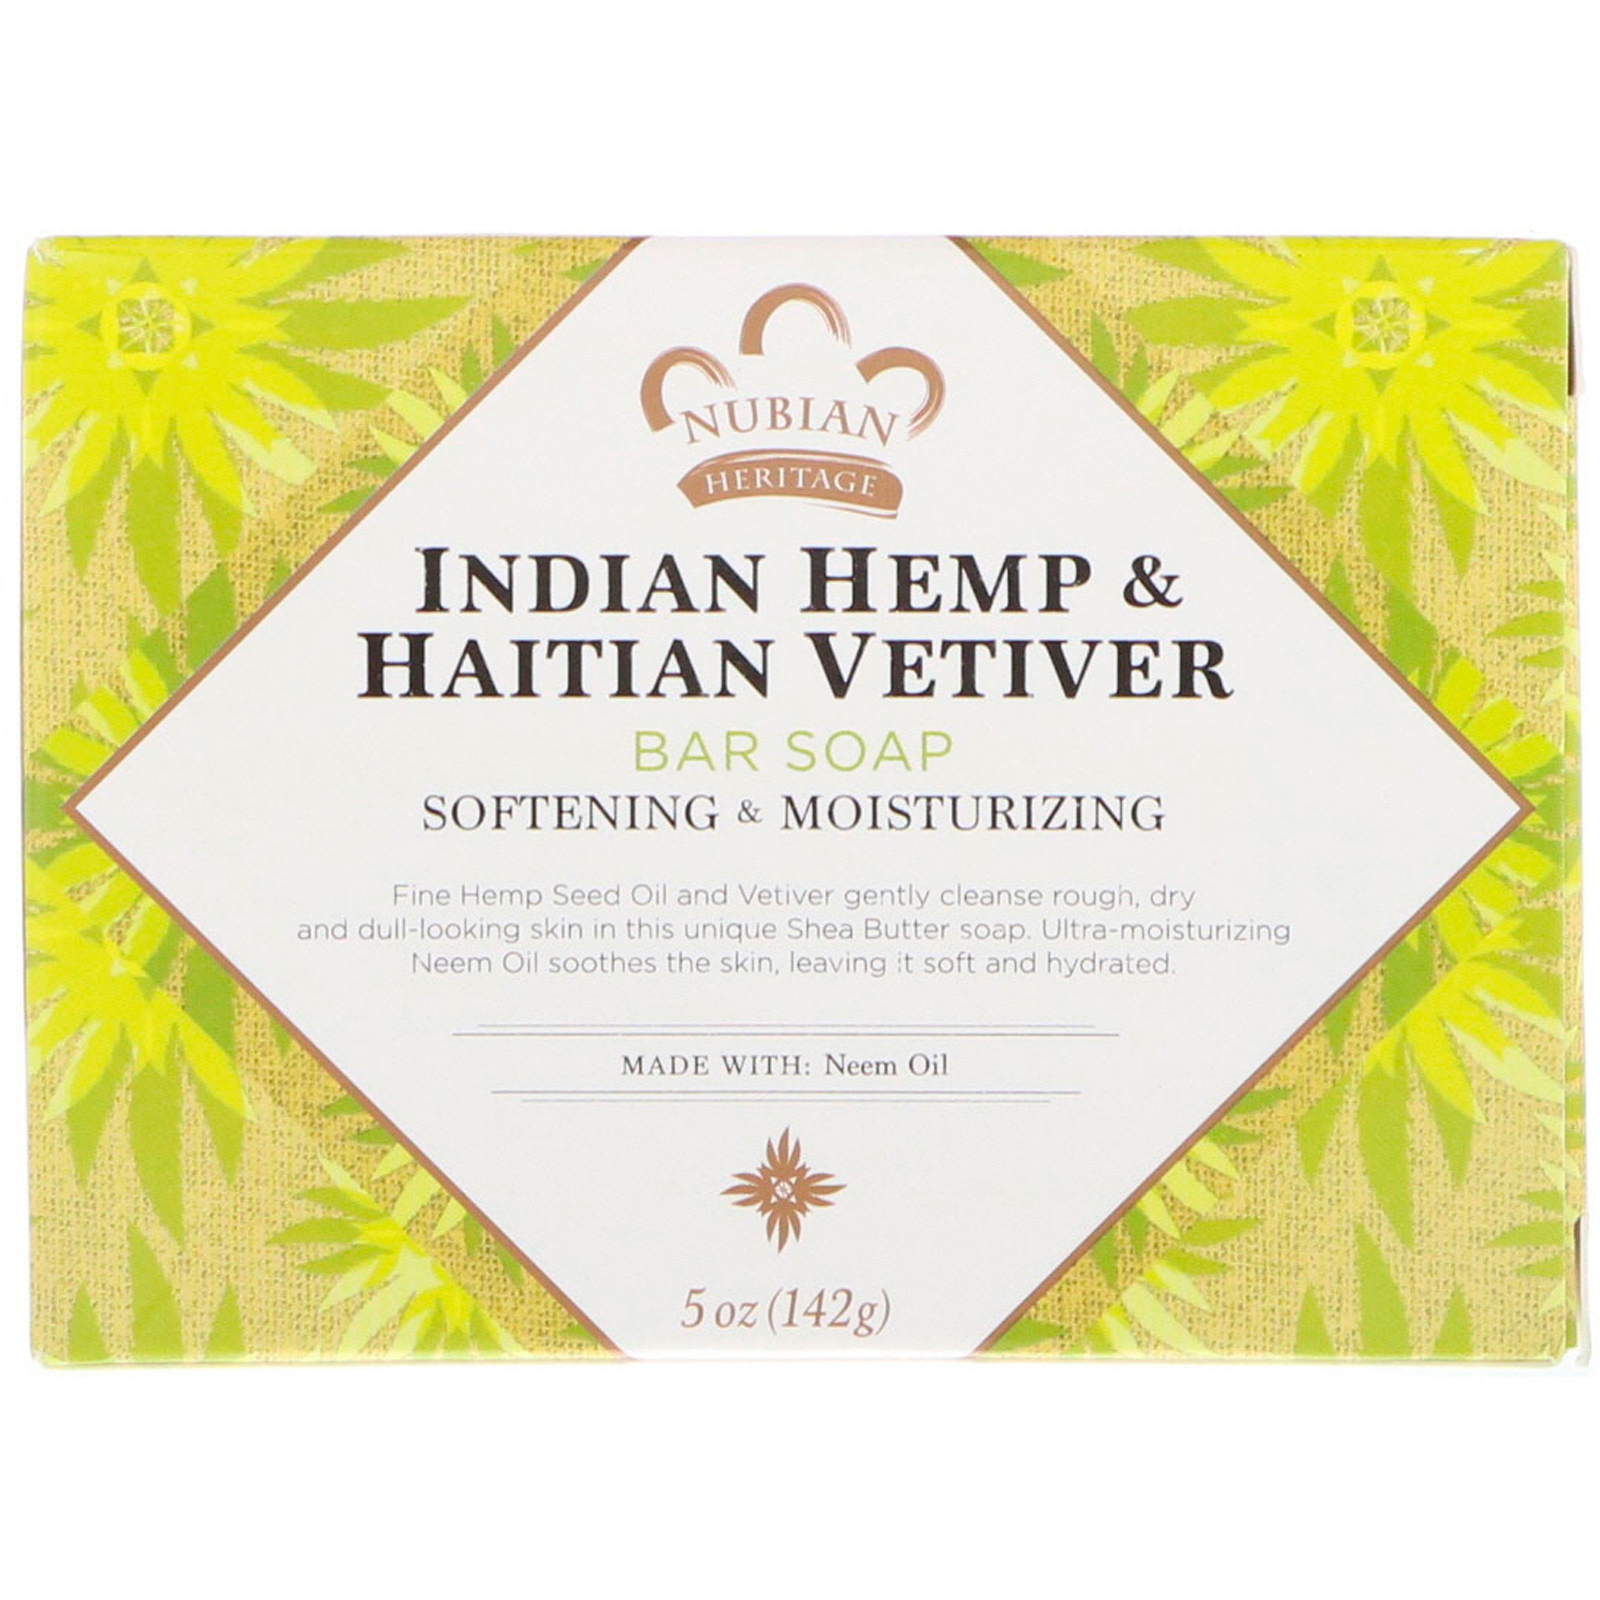 Nubian Heritage, Indian Hemp & Haitian Vetiver Bar Soap, 5 oz (142 g ...